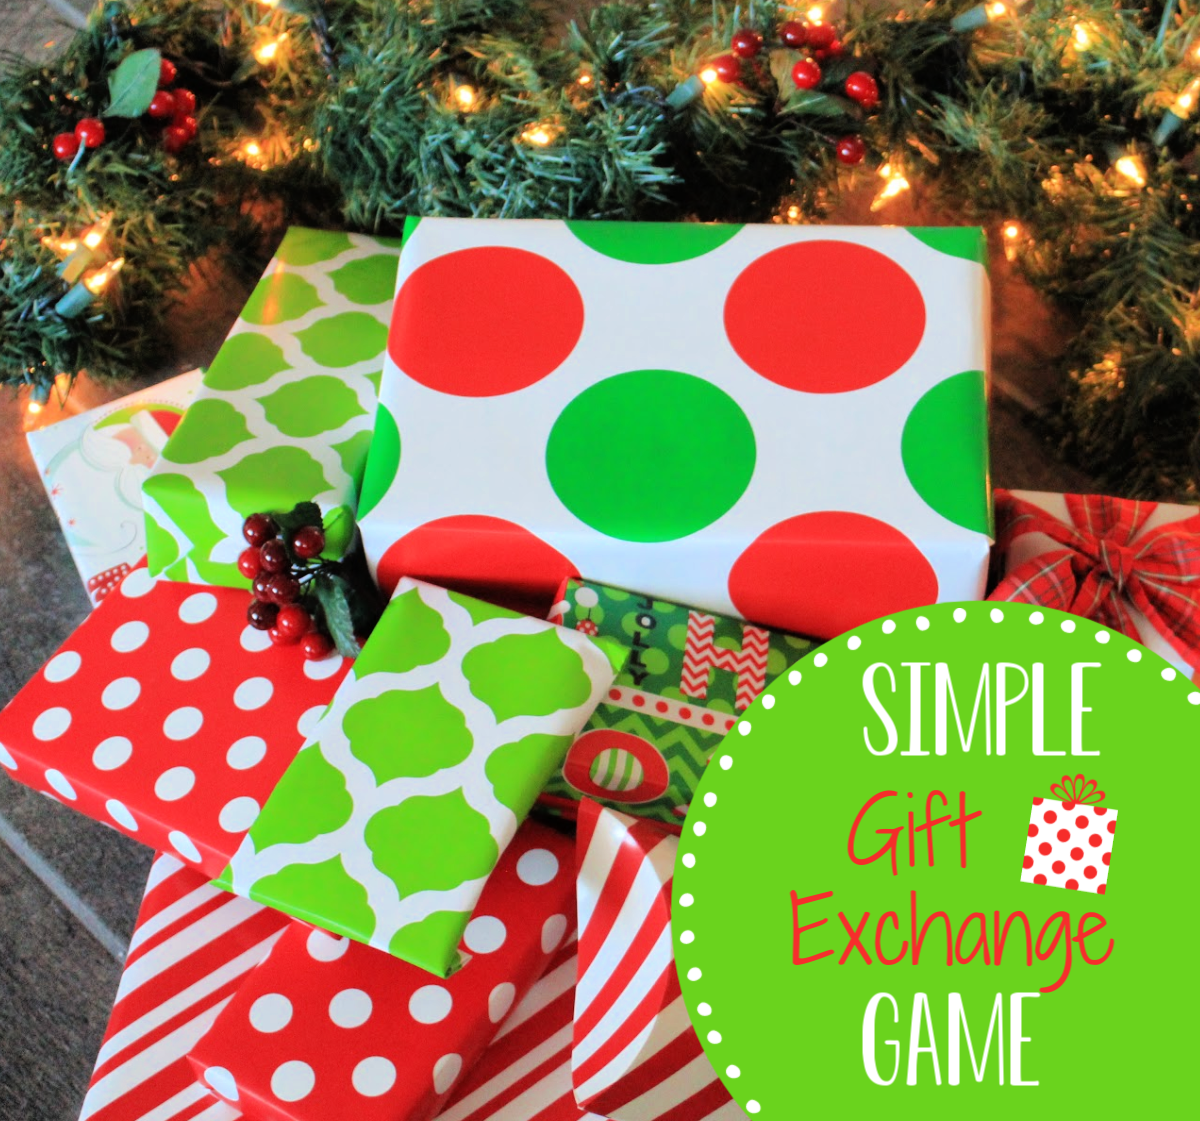 Simple Gift Exchange Game